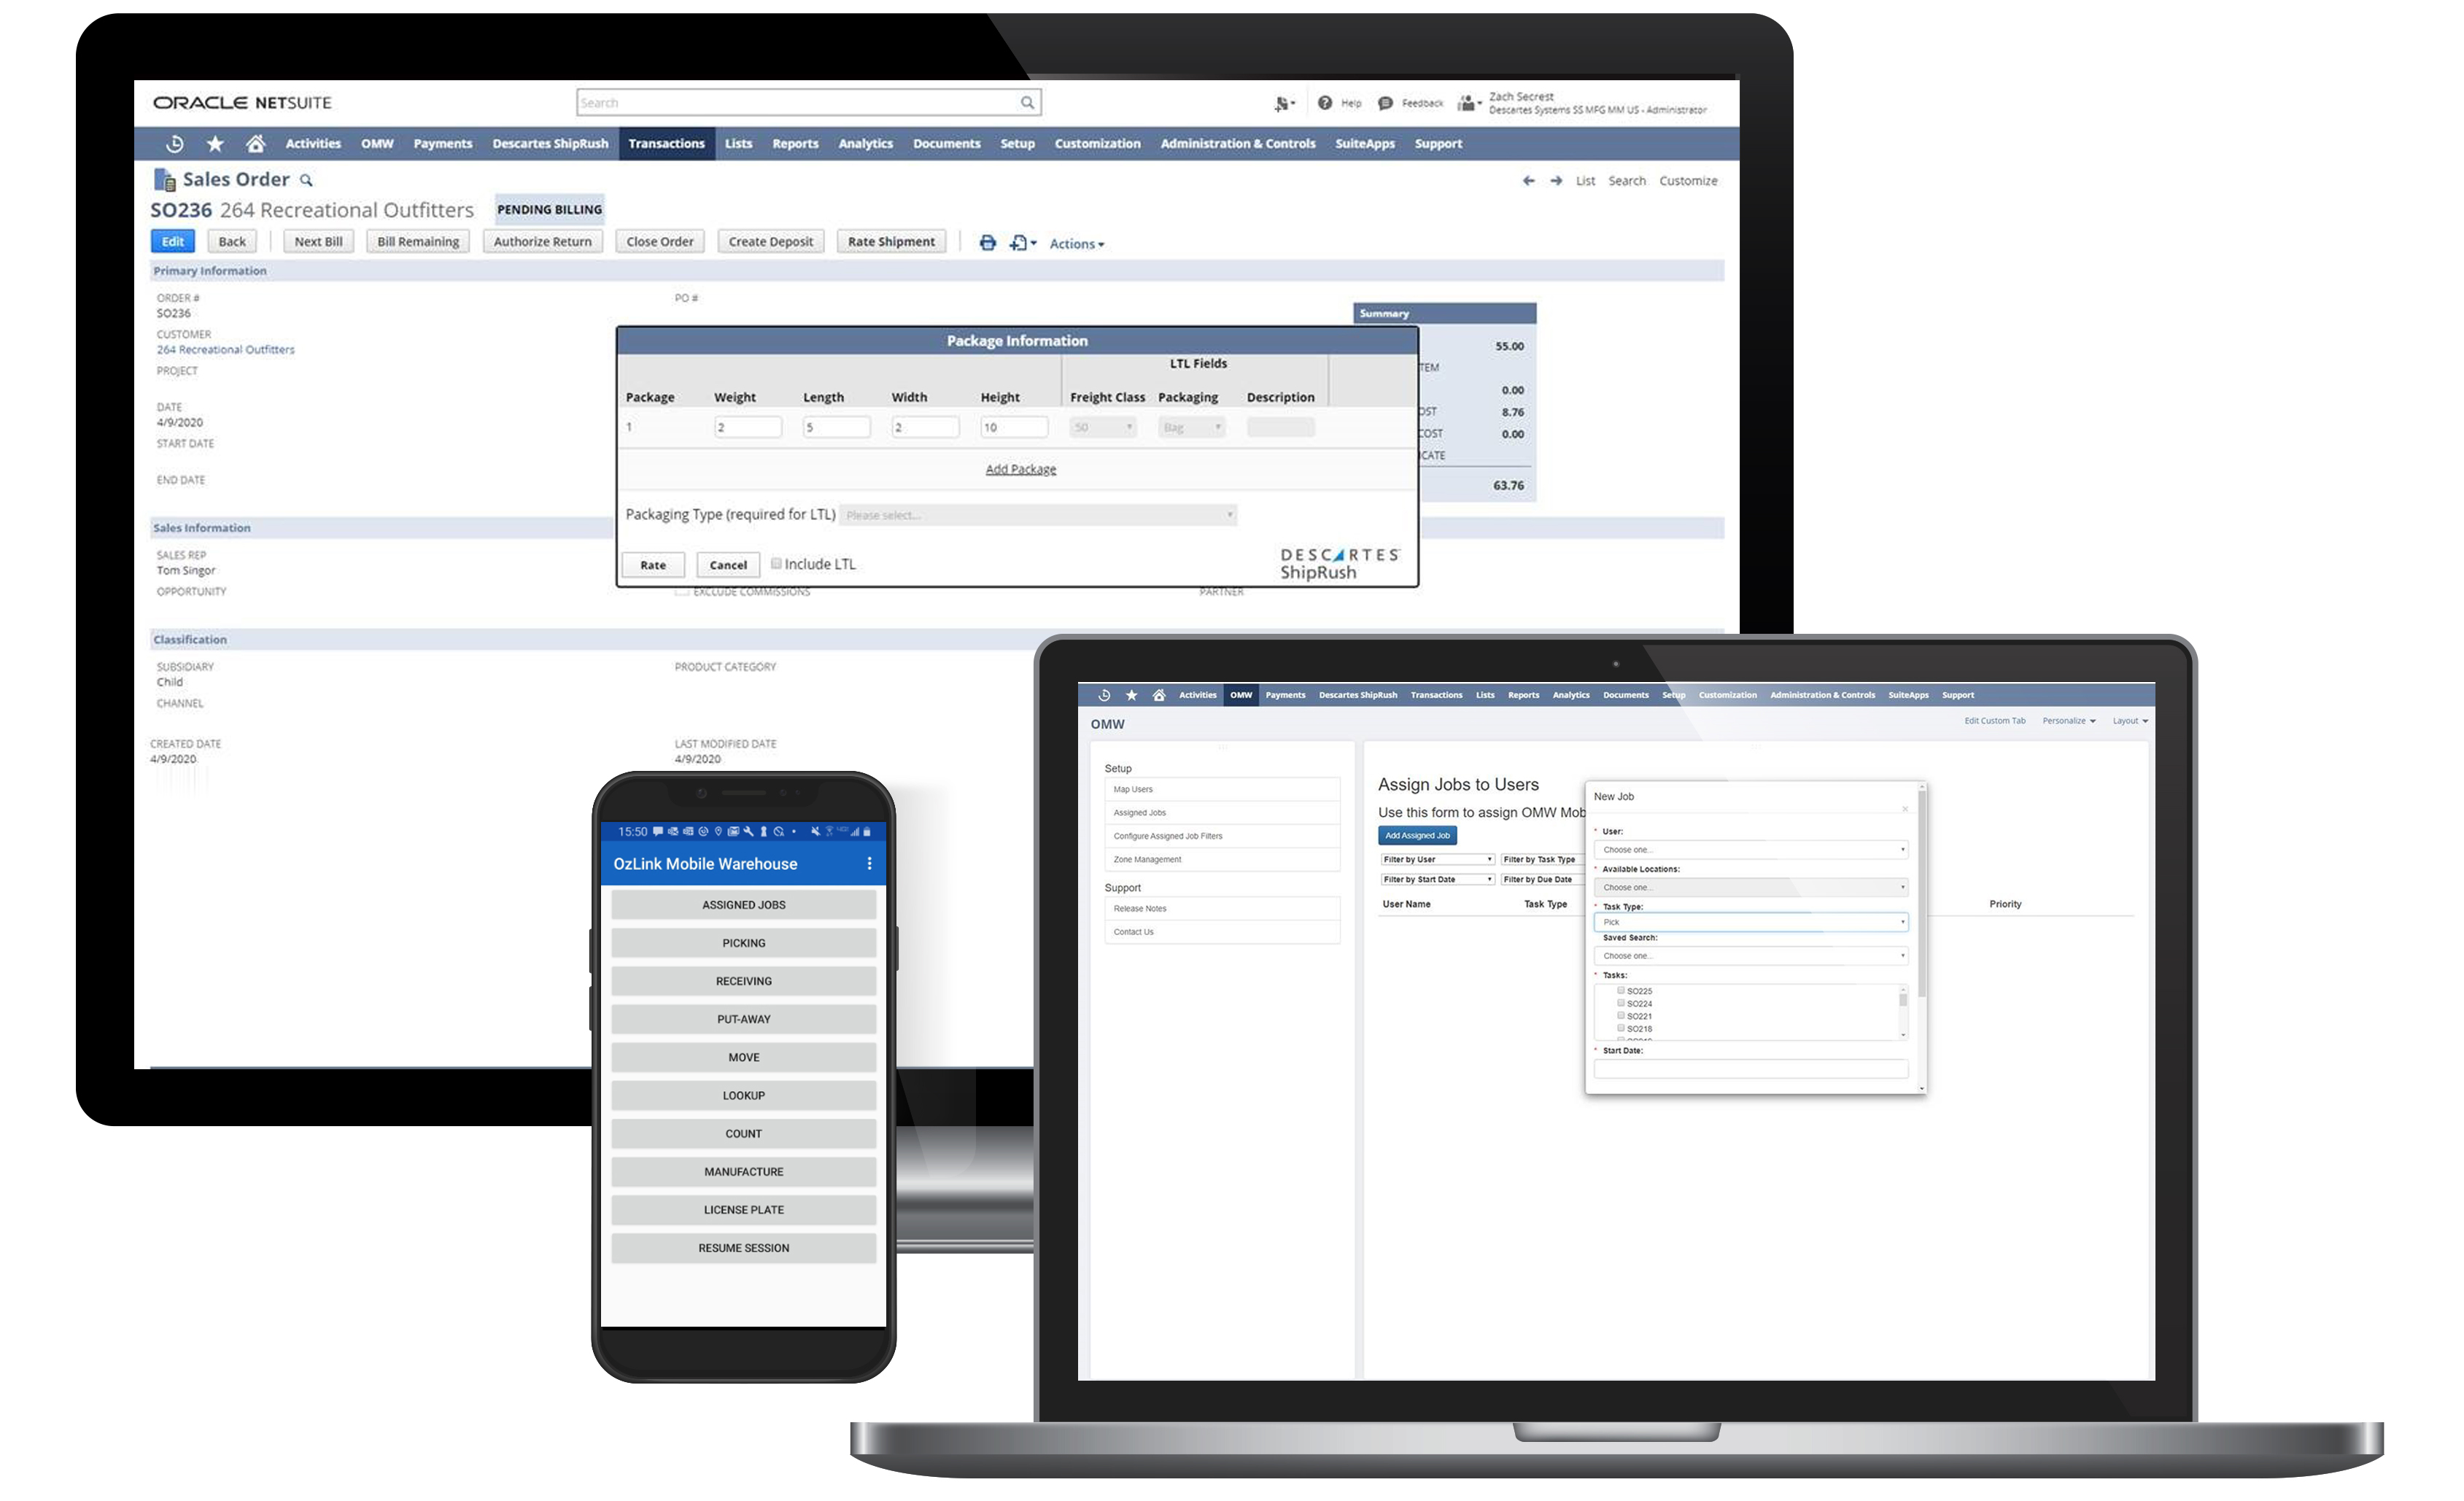 A world-class mobile-enabled warehouse management system WMS NetSuite connected solution to optimize shipping